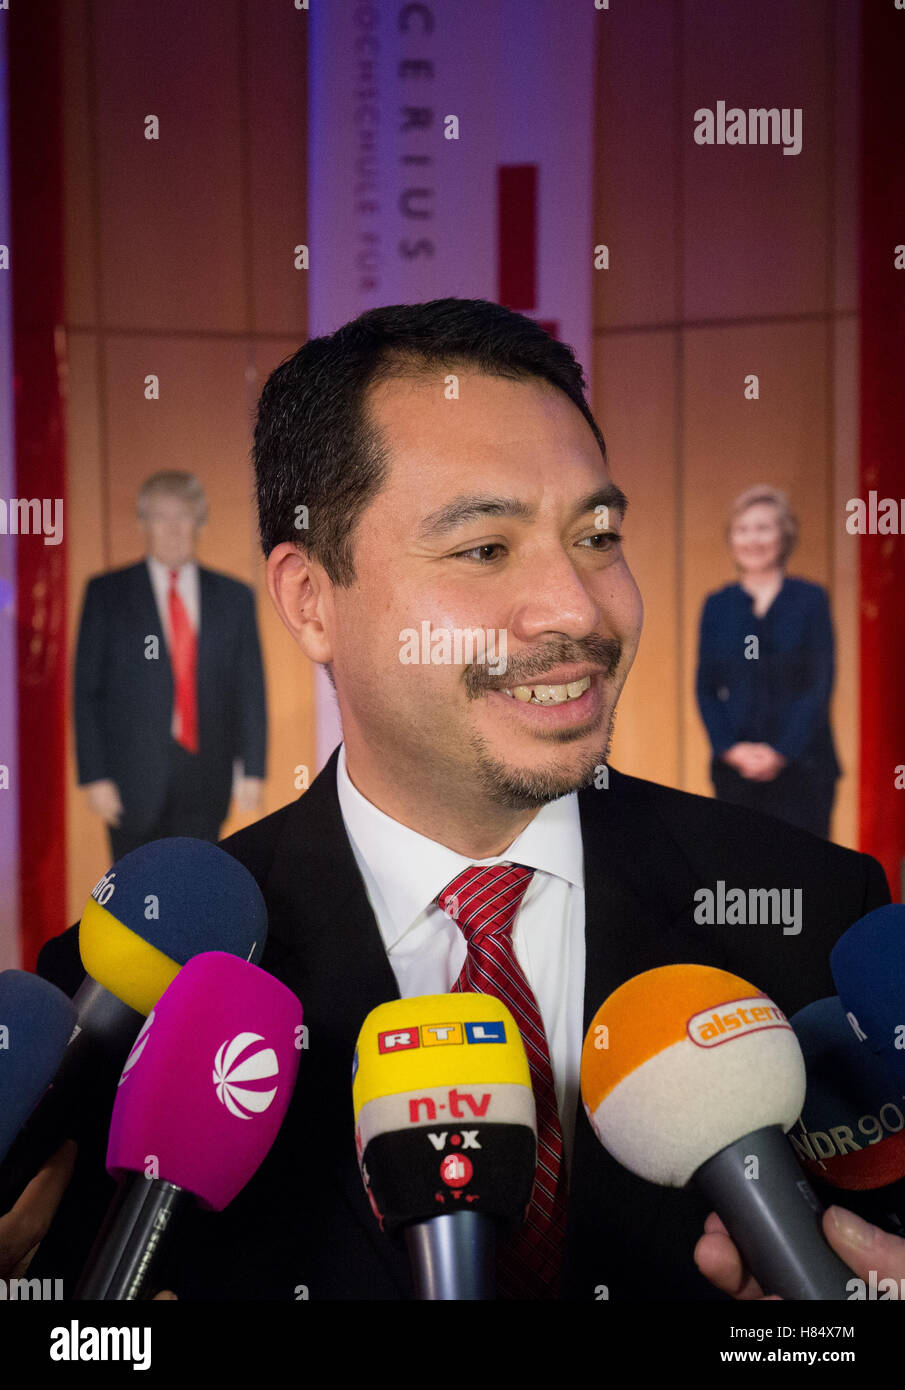 Hamburg, Germany. 8th Nov, 2016. Richard T. Yoneoka, US consul general speaks during an interview at the election - Stock Image